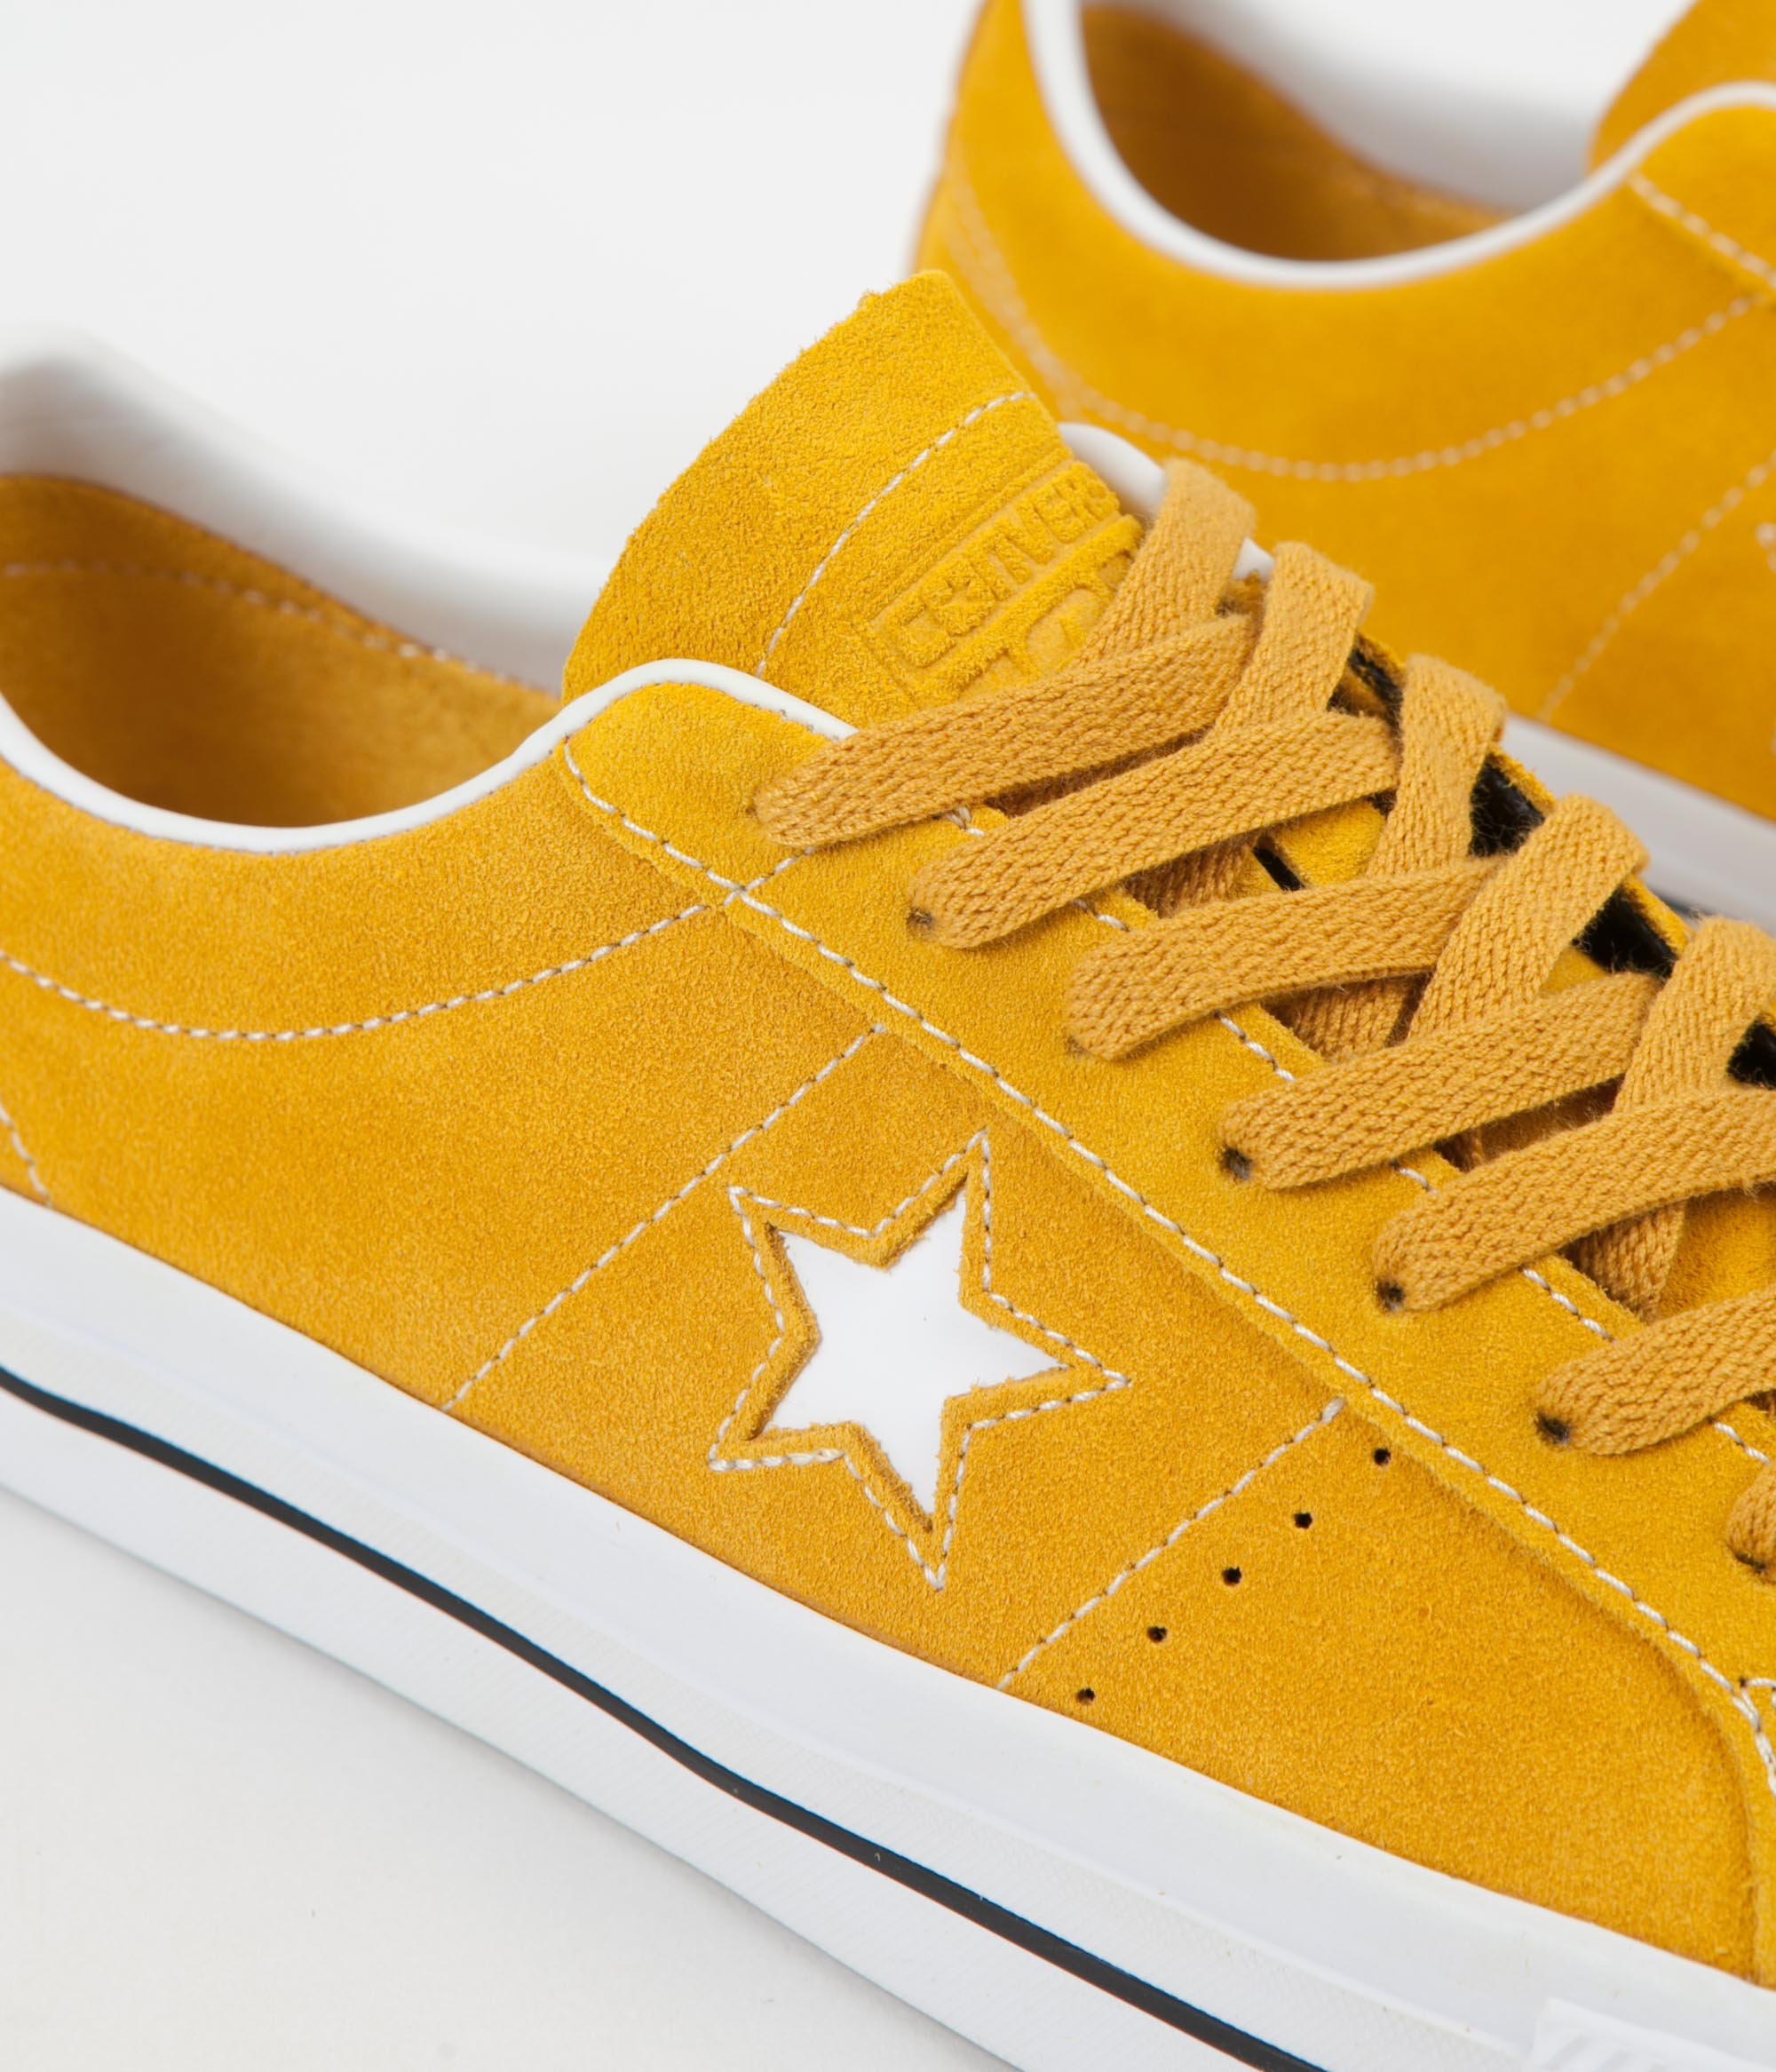 ... Converse One Star Pro Ox Shoes - Mineral Yellow   White   Black ... 35d665bac